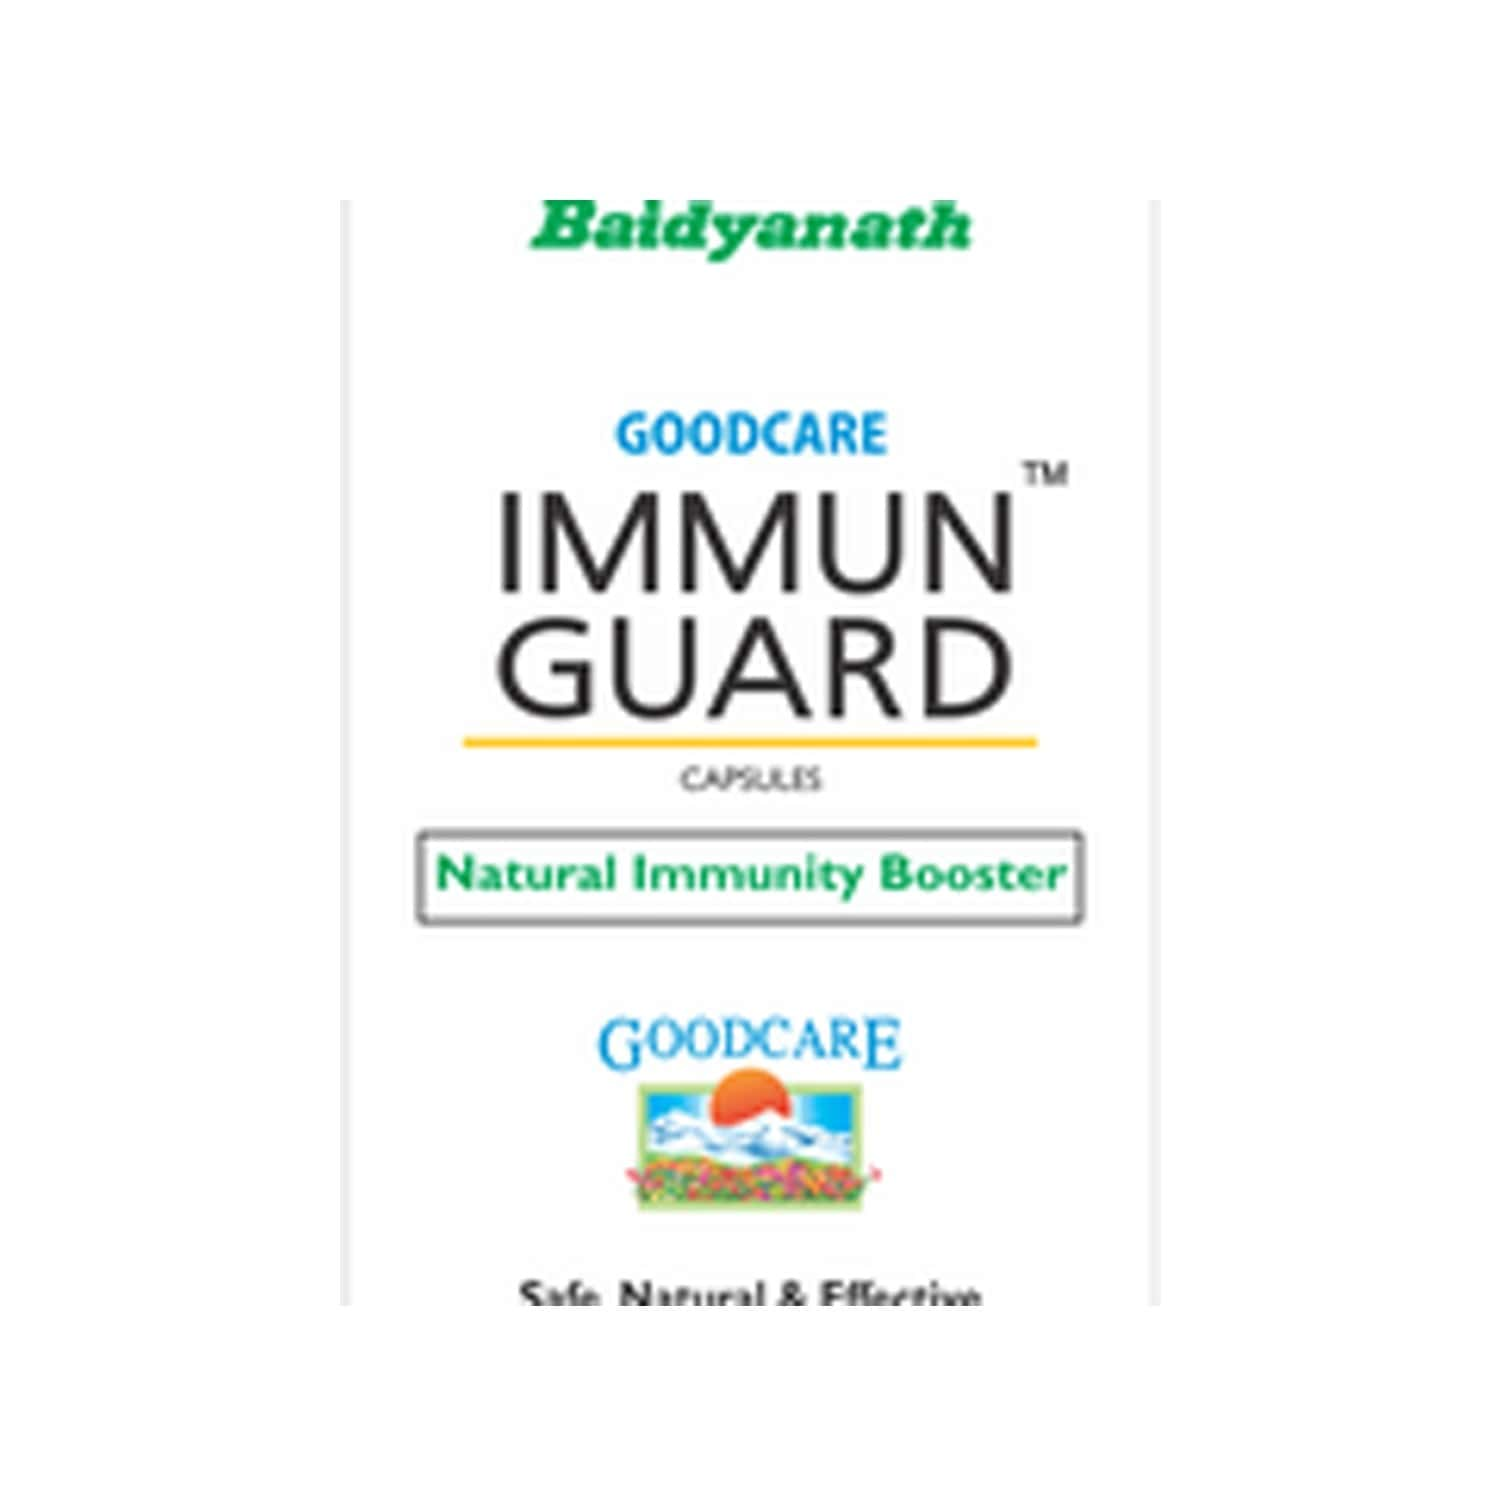 Goodcare Immun Guard - 60no's